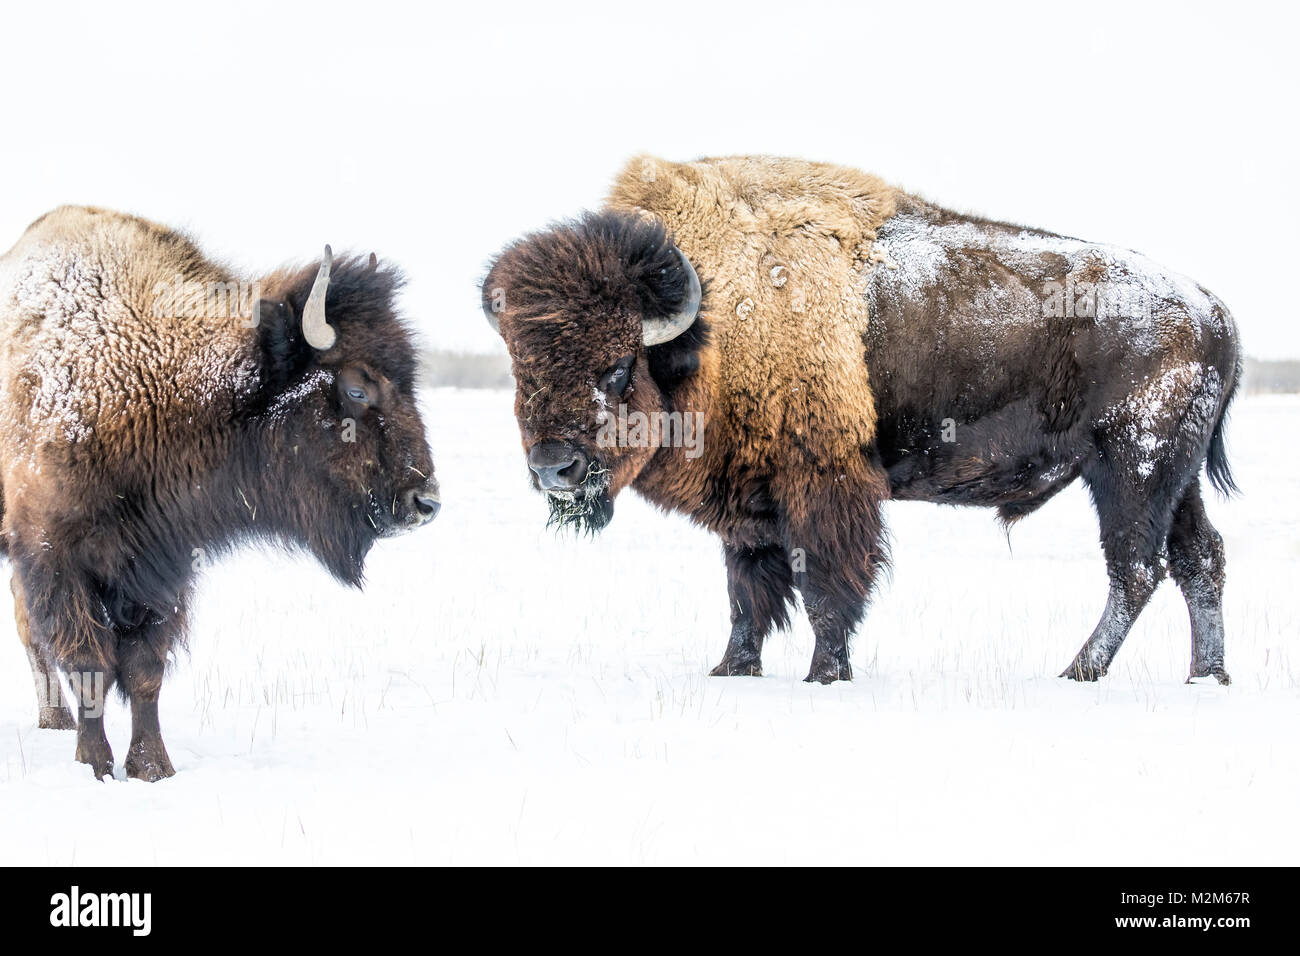 Plains Bison, bull, or Buffalo (Bison bison bison) in winter, Manitoba, Canada. - Stock Image